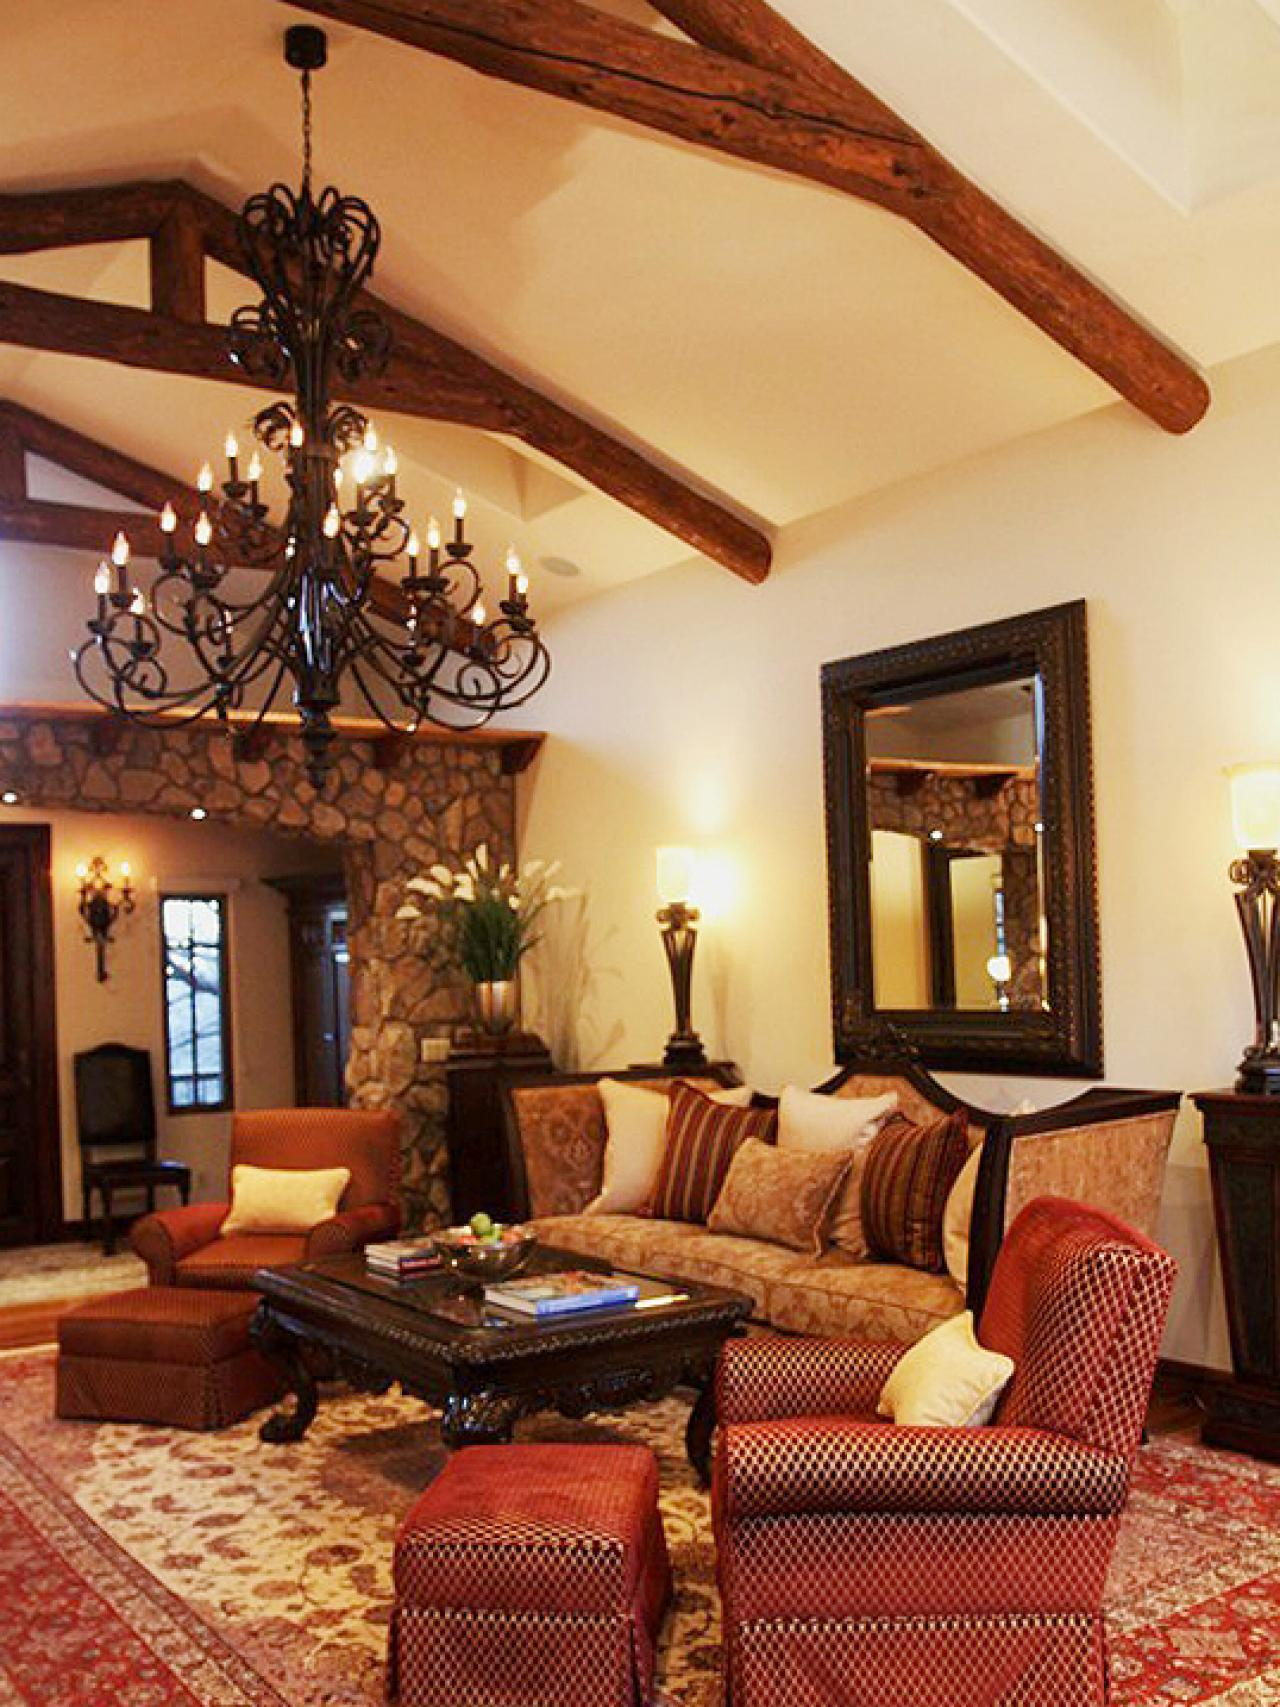 spanish style decorating living room. Black Bedroom Furniture Sets. Home Design Ideas